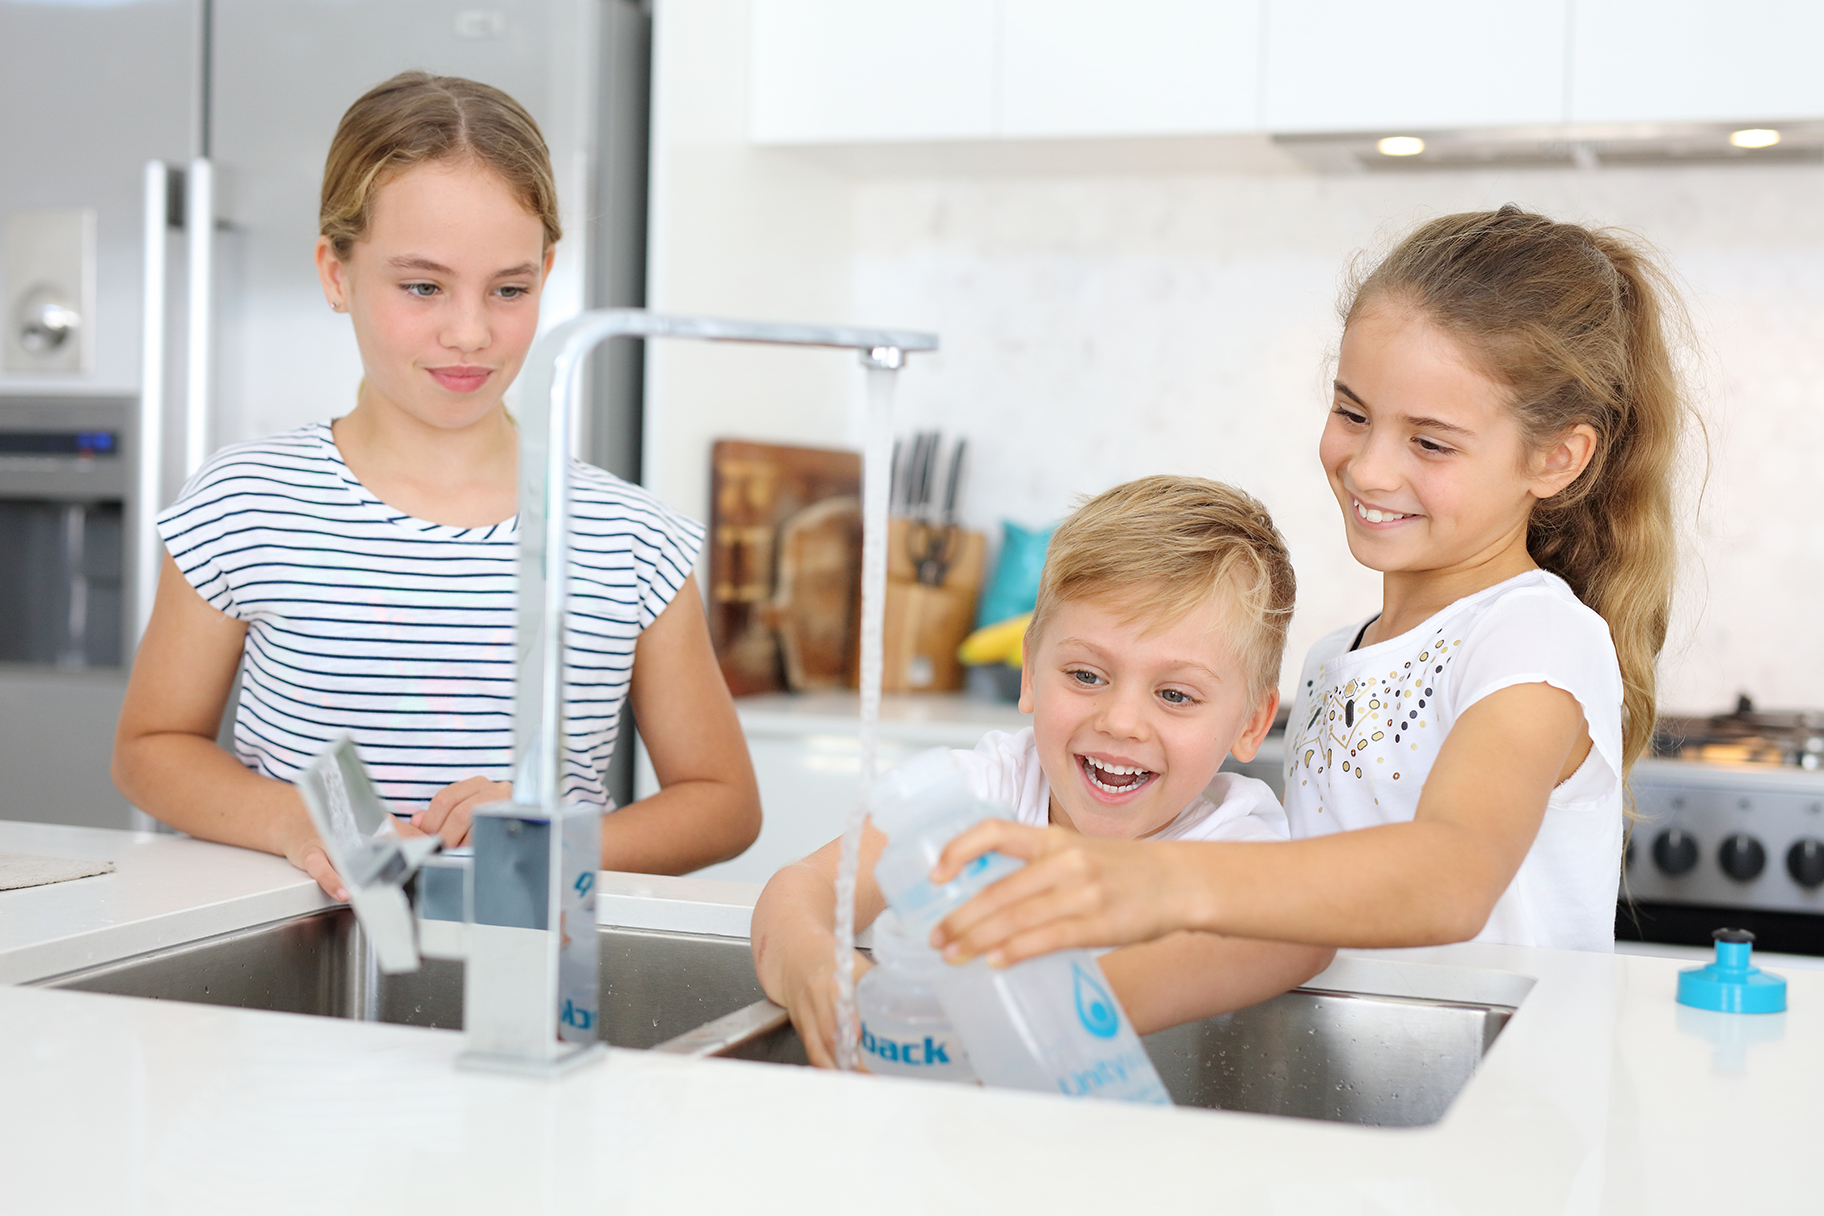 Children filling water bottles at kitchen sink